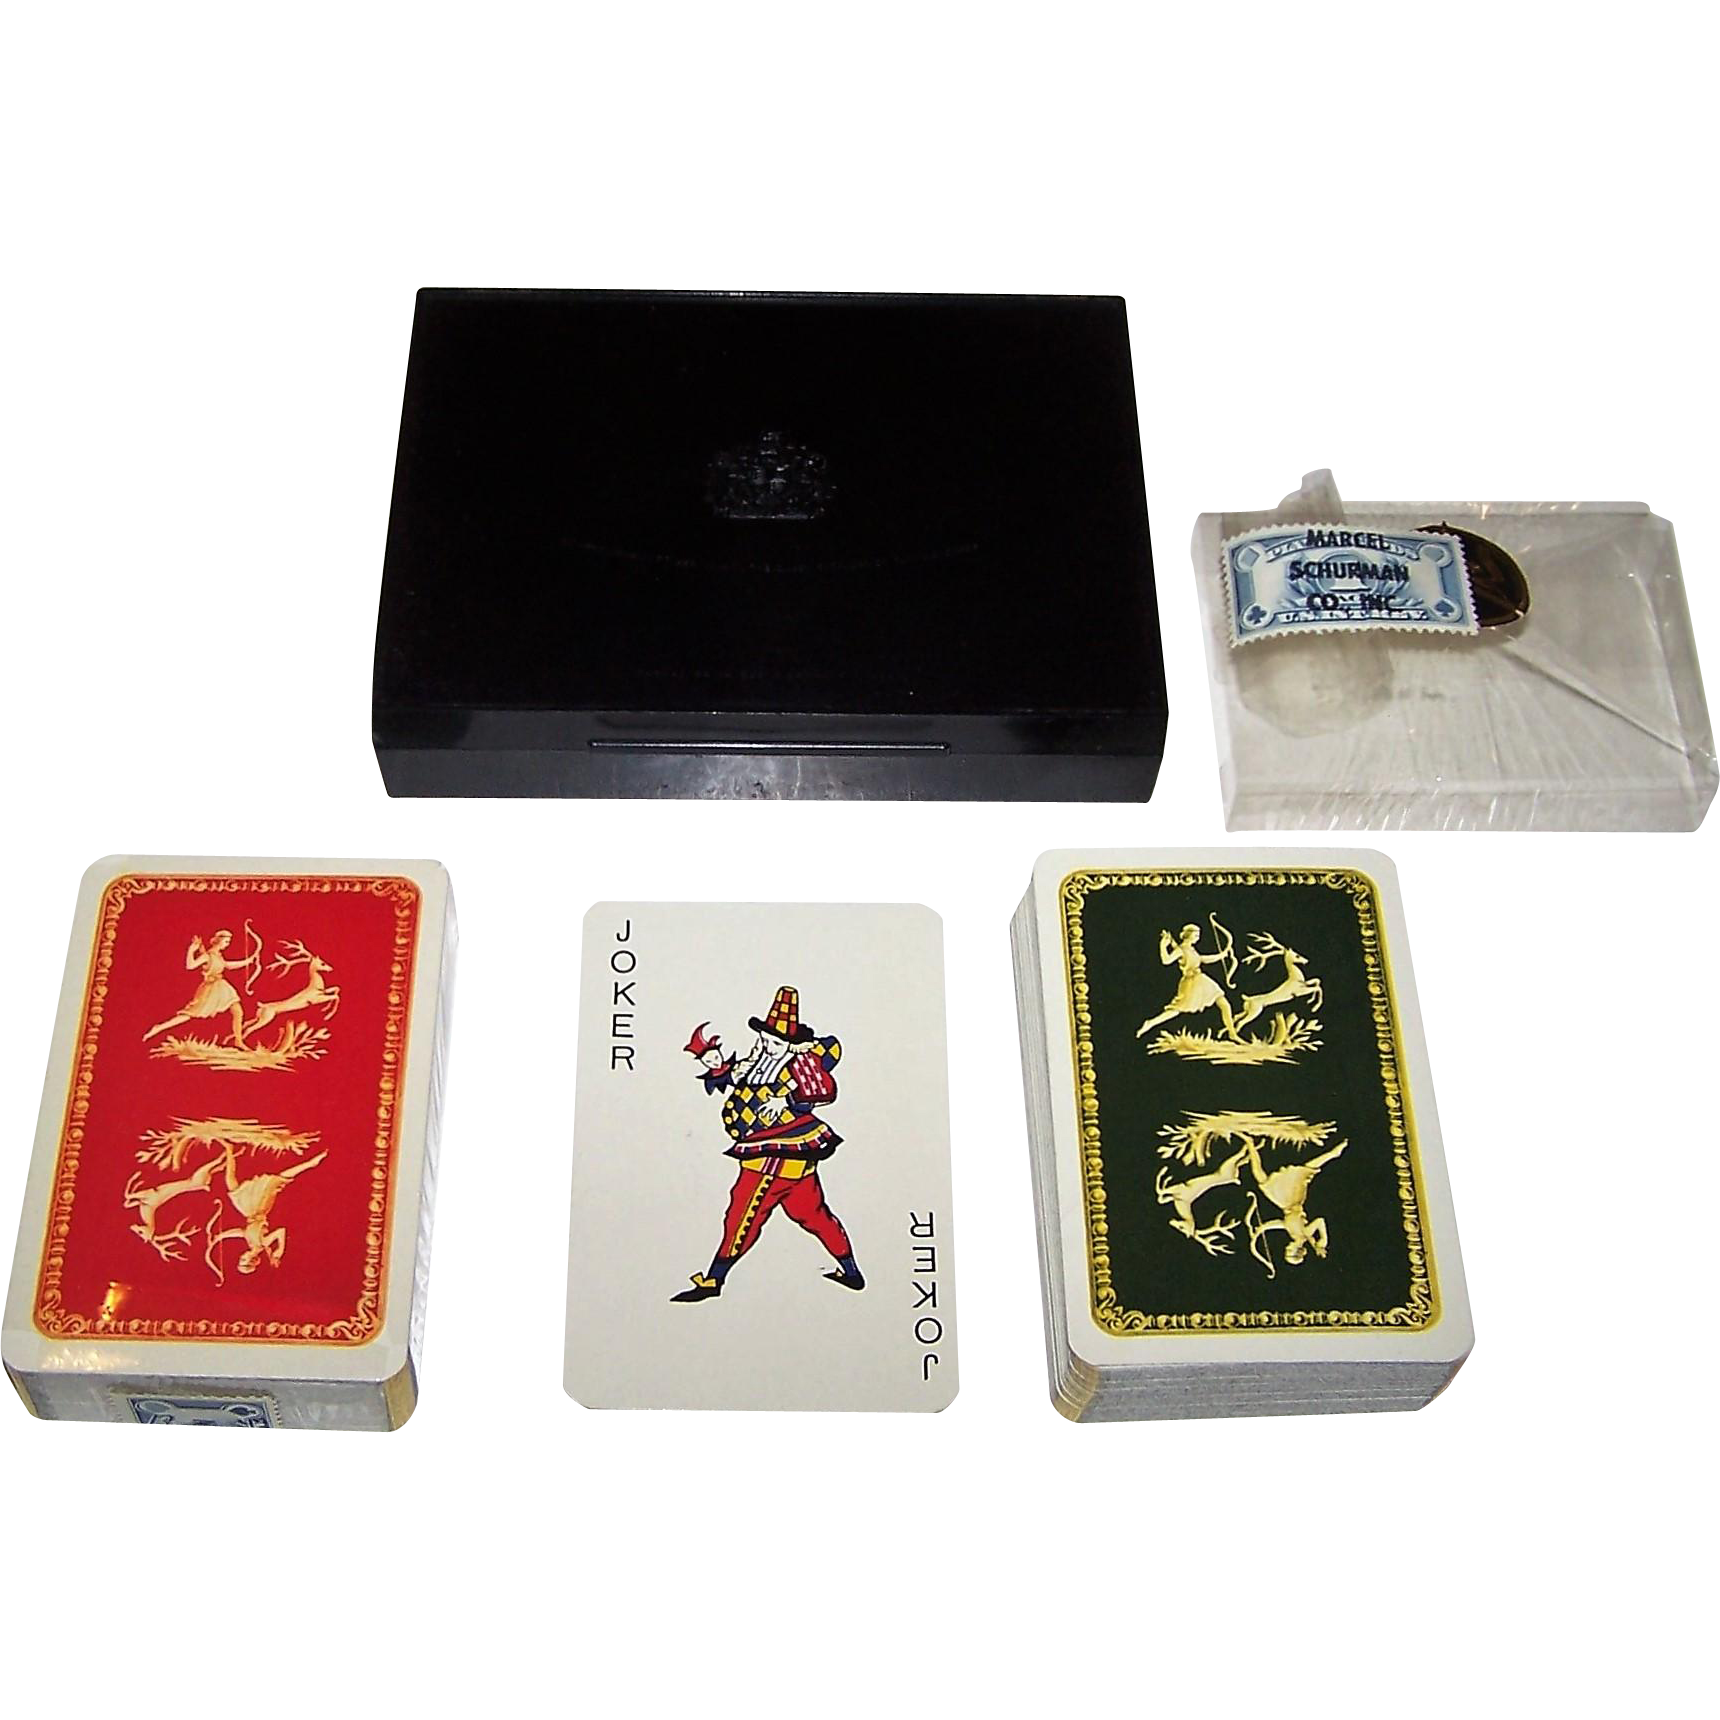 "Double Deck Van Genechten ""Diana the Huntress"" Playing Cards, Marcel Schurman Co., Inc., c.1950s"